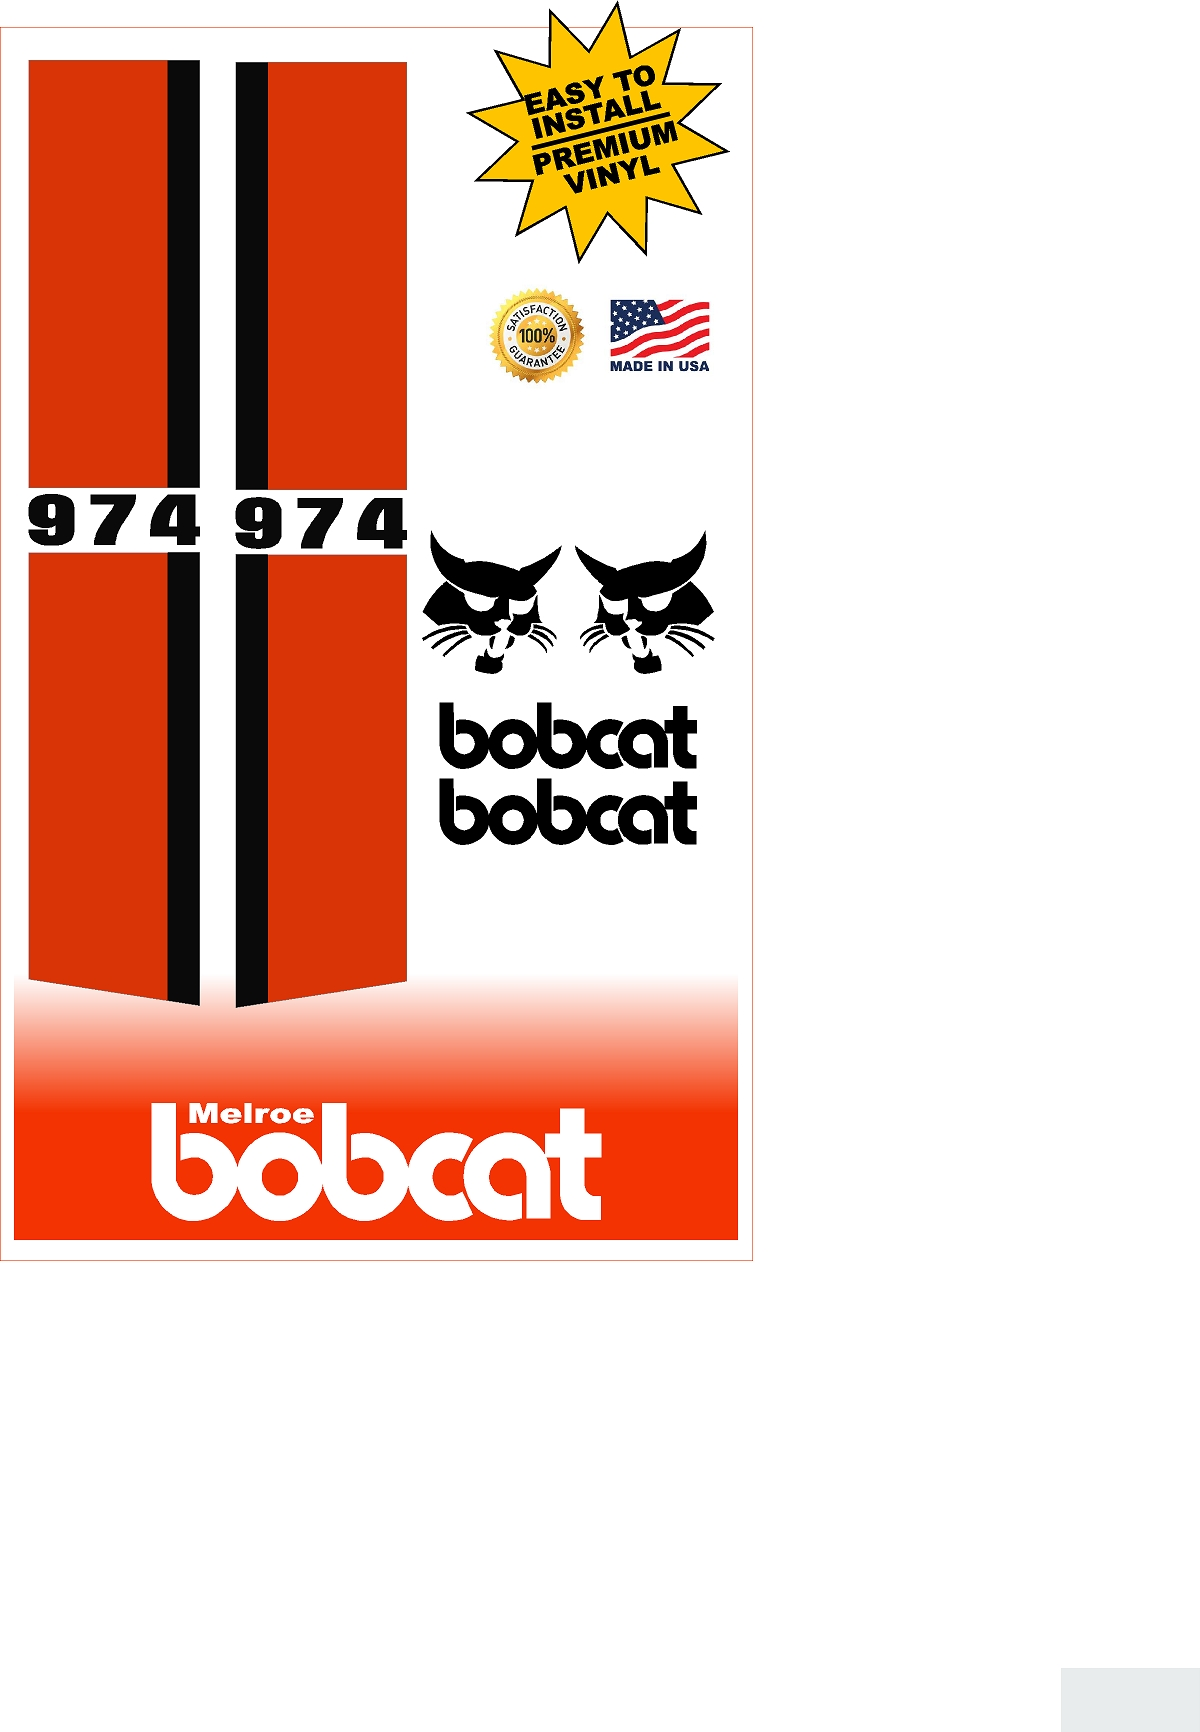 Decal Kits Product : Bobcat replacement decal kit machine decals